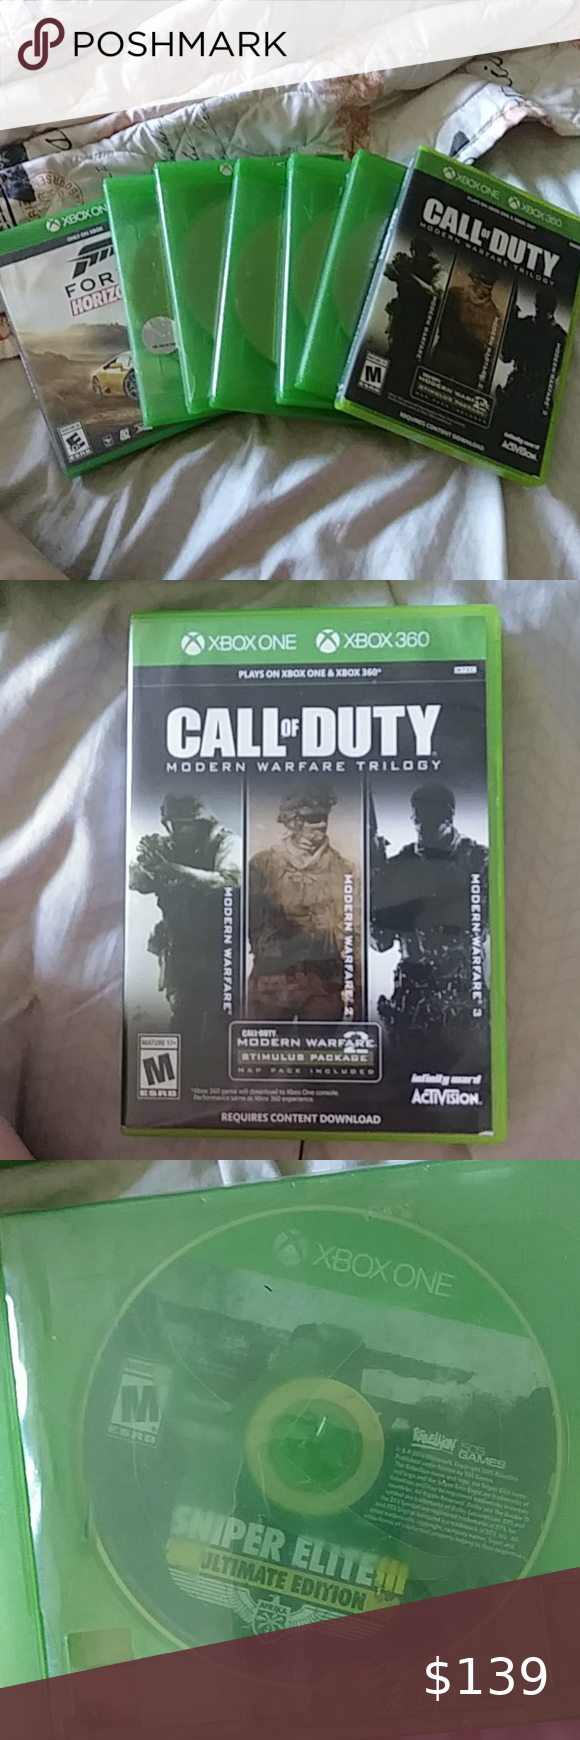 Xbox One Games I M Open To Offers And Discounted Bundles I Do Not Mind To Separate The Games Are Call Of Dudy Modern W In 2020 Xbox One Games Xbox One